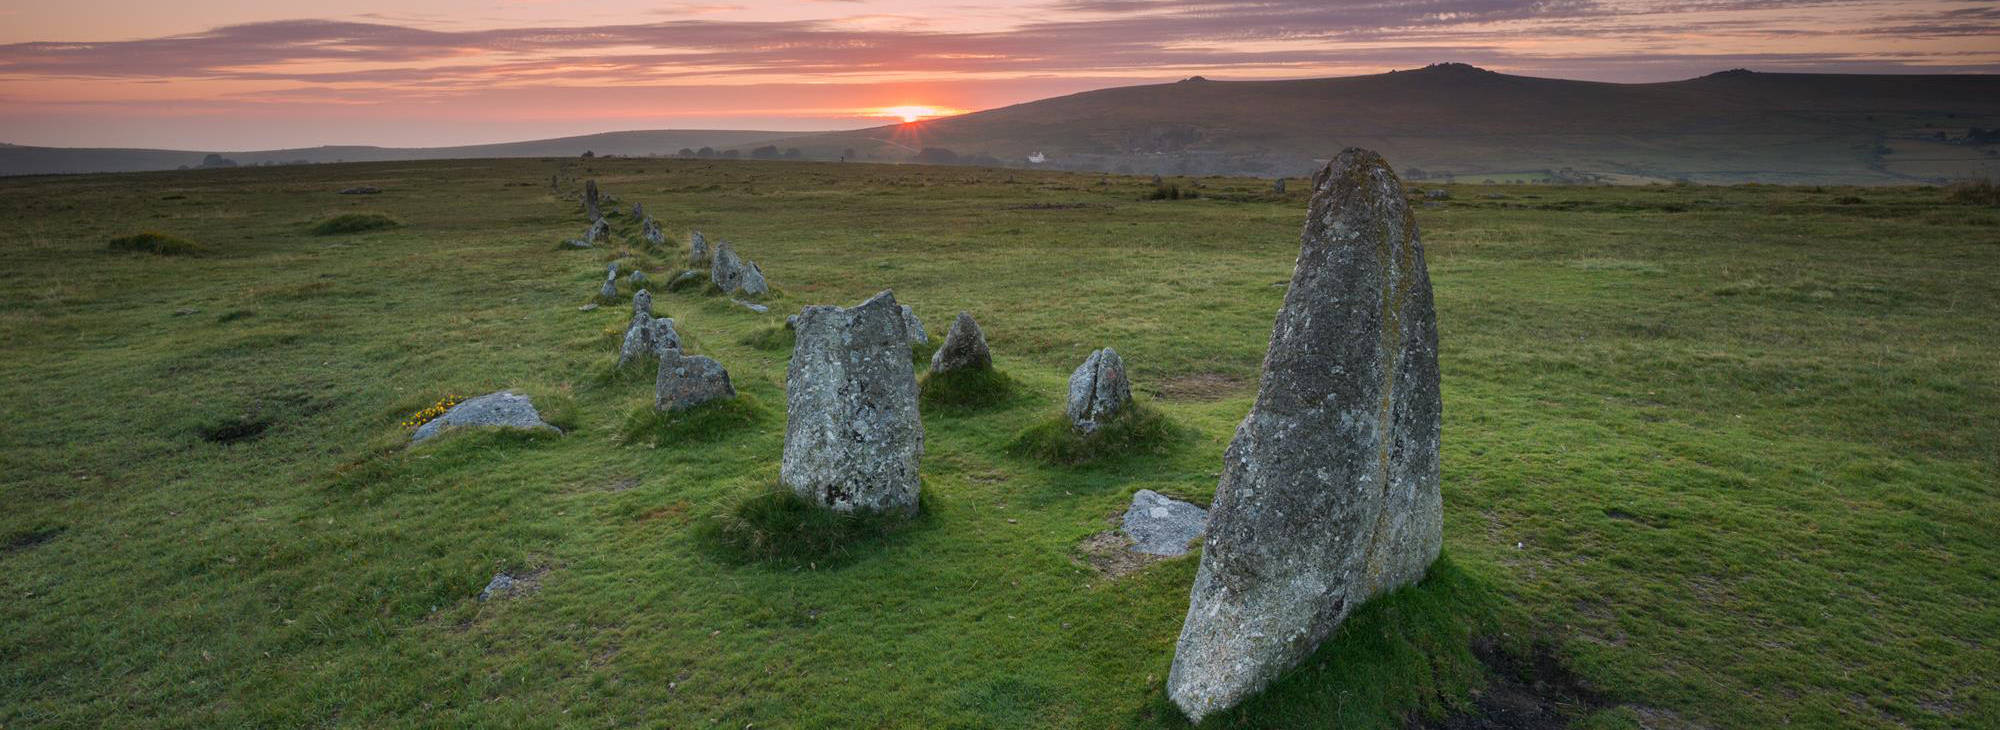 Sunset Merrivale stone row Dartmoor